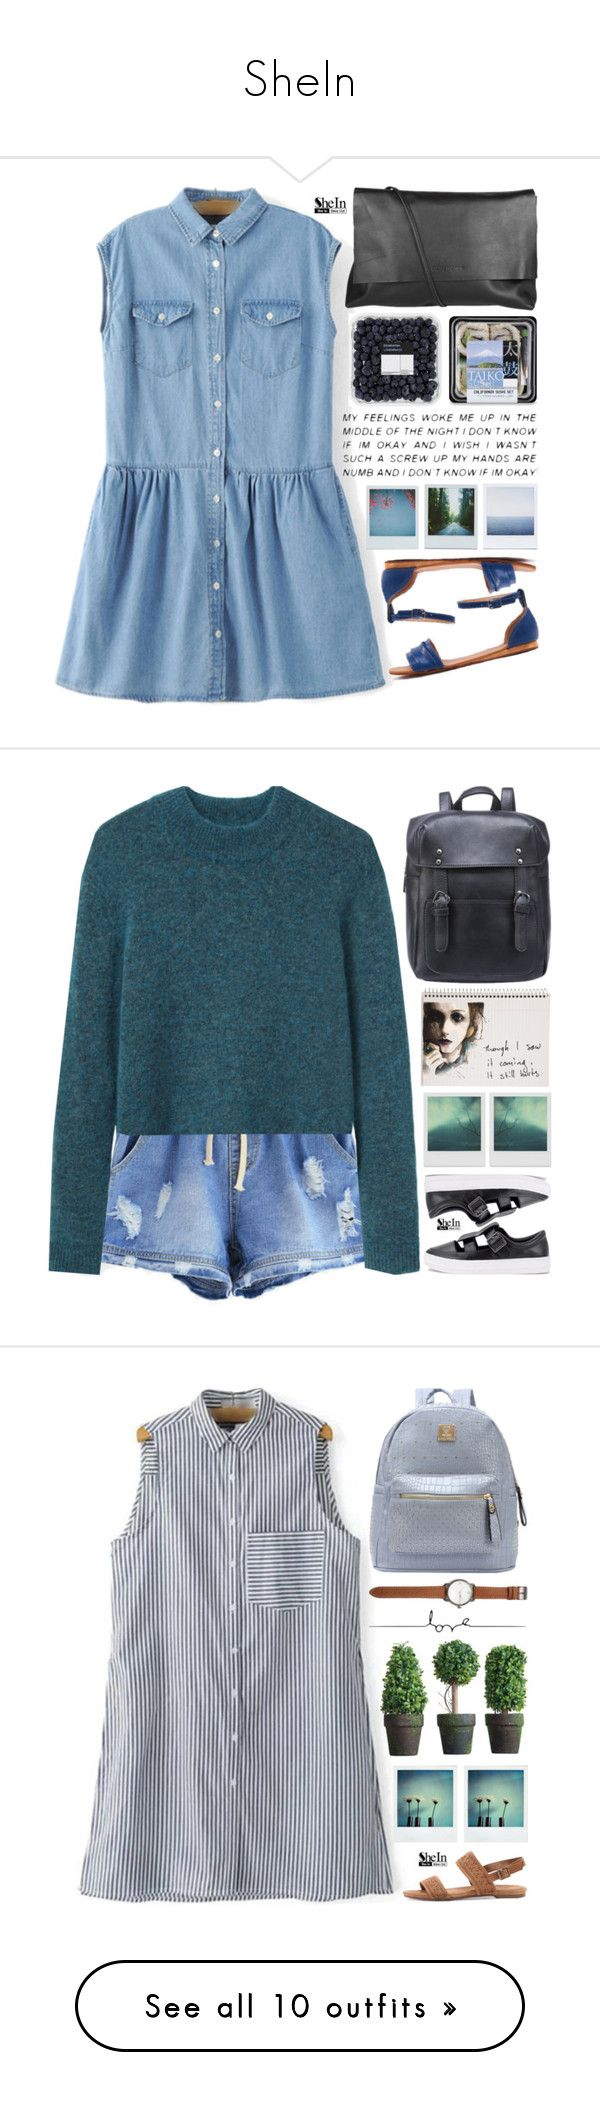 """SheIn"" by scarlett-morwenna ❤ liked on Polyvore featuring Arlington Milne, Polaroid, kitchen, vintage, Acne Studios, Mead, Love Quotes Scarves, Jack Spade, Coqui Coqui and adidas"